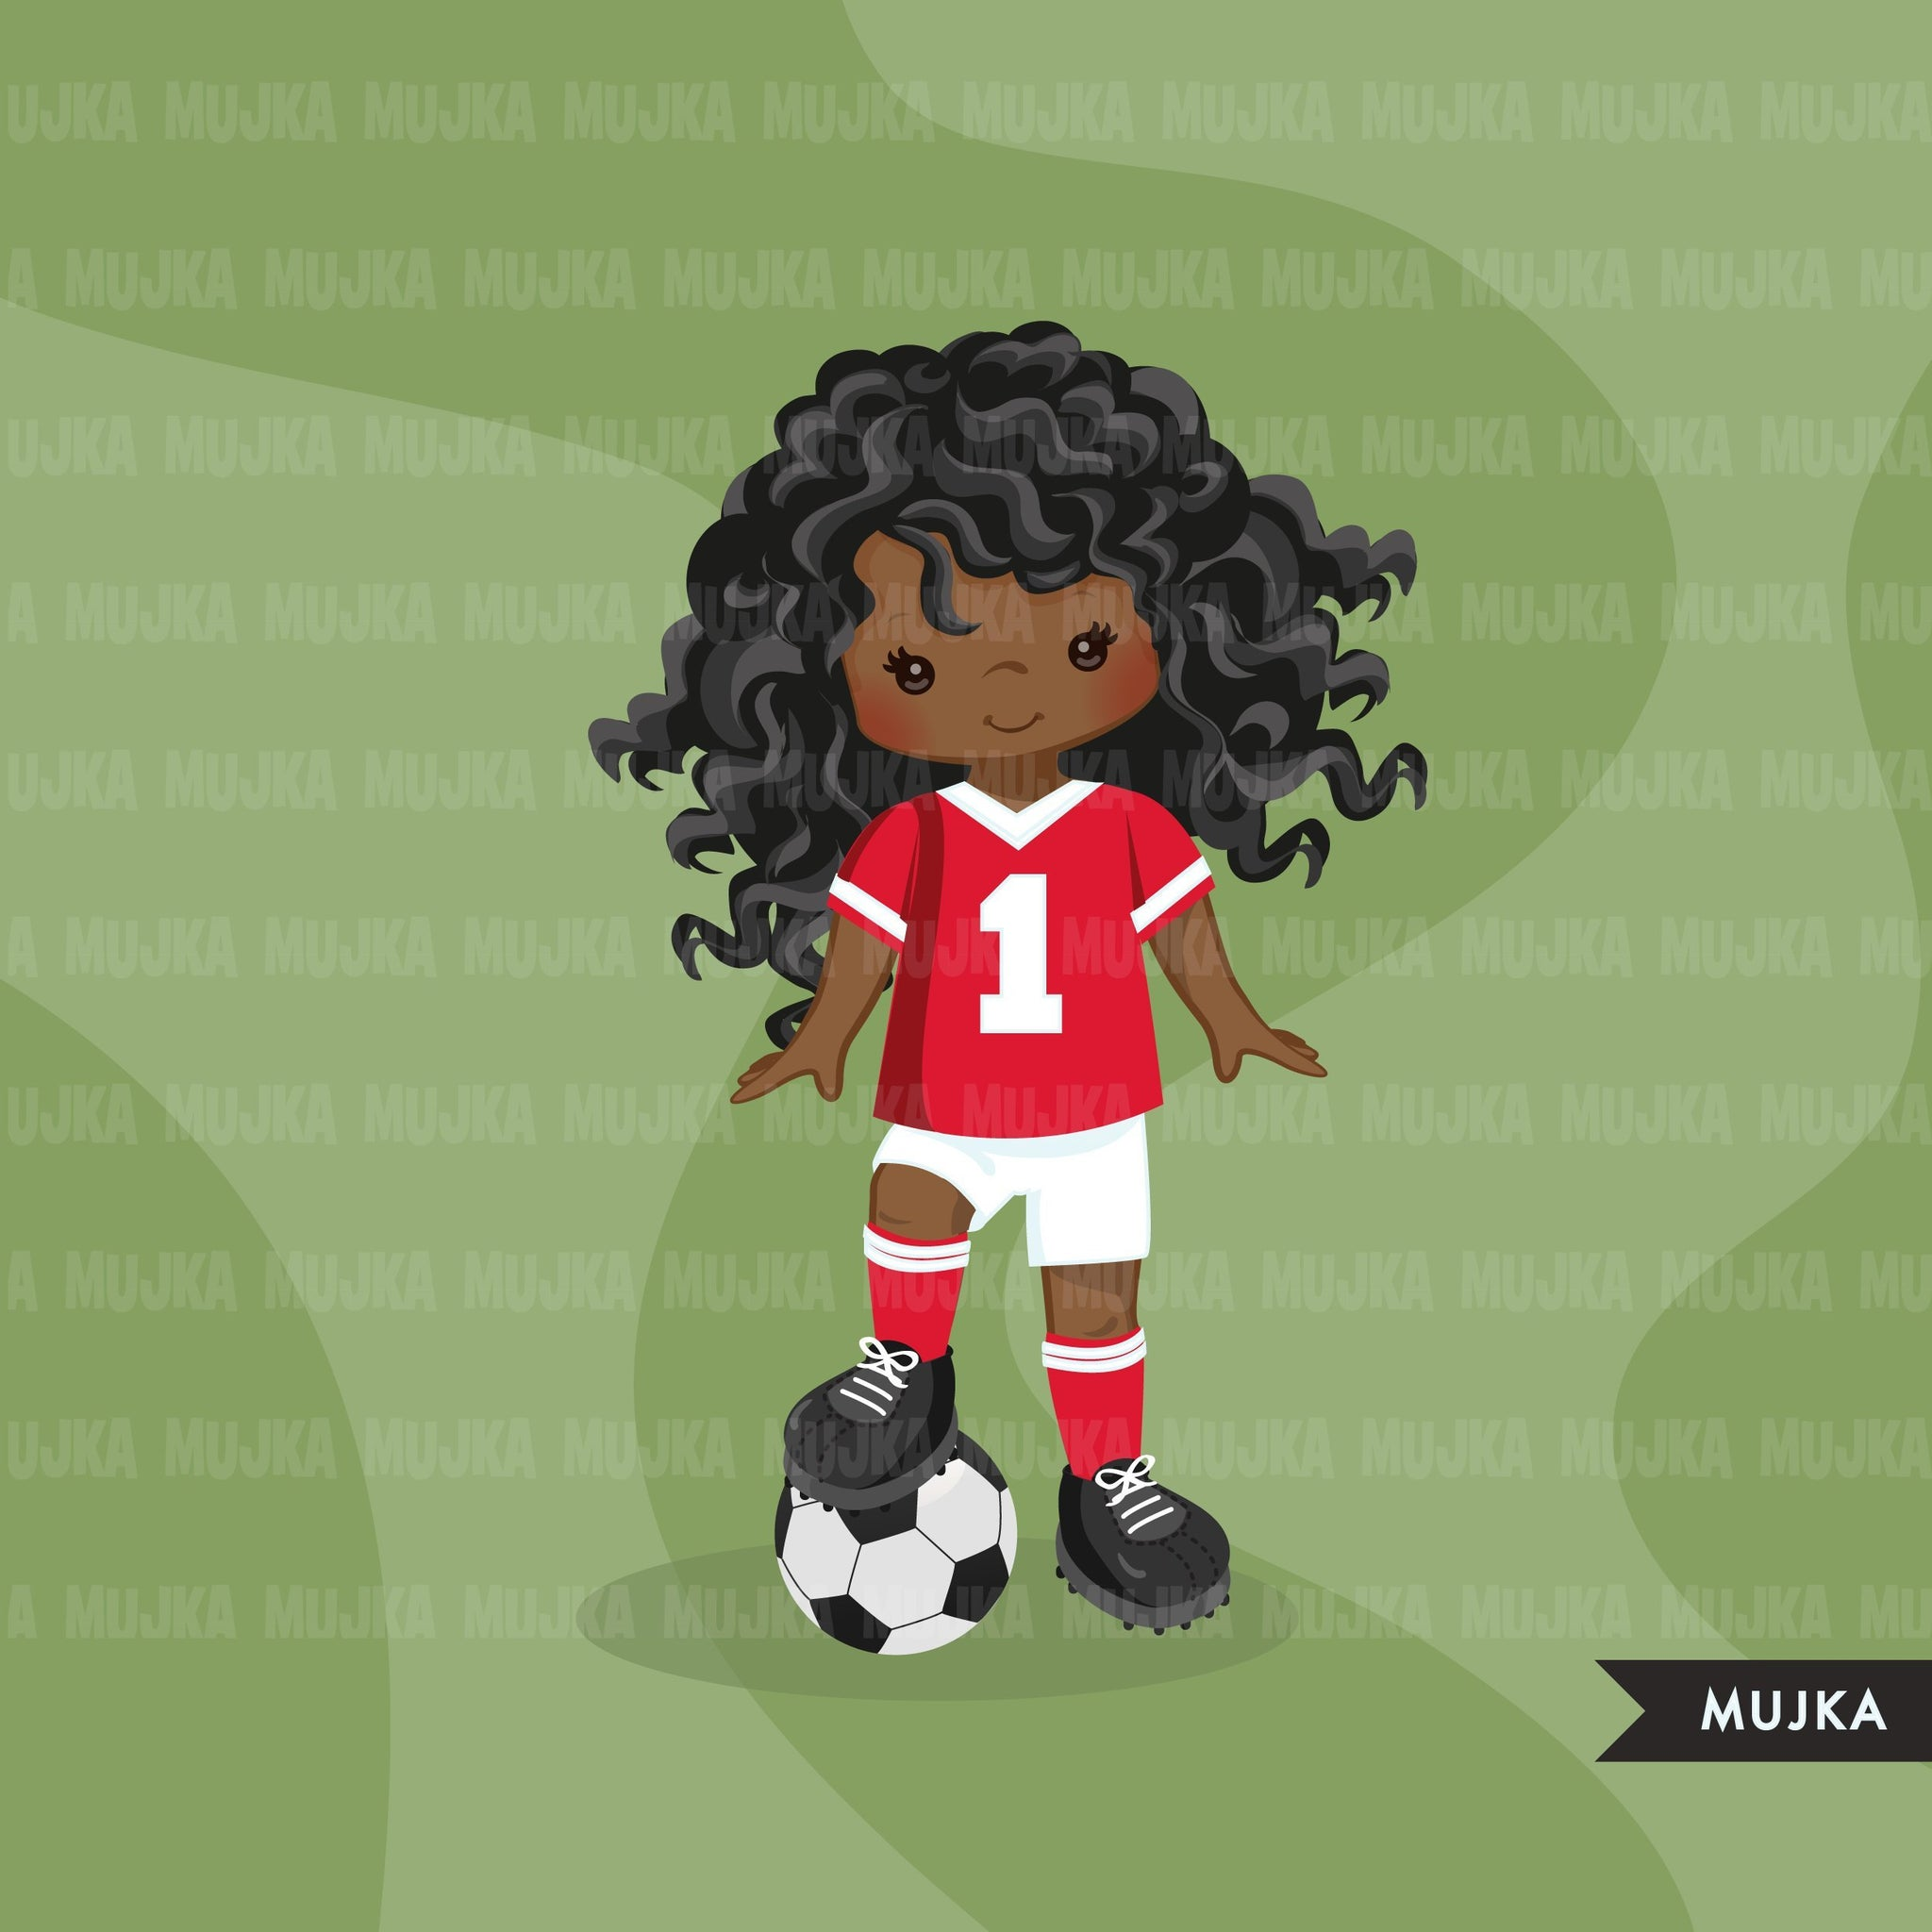 Soccer clipart, girl in red jersey